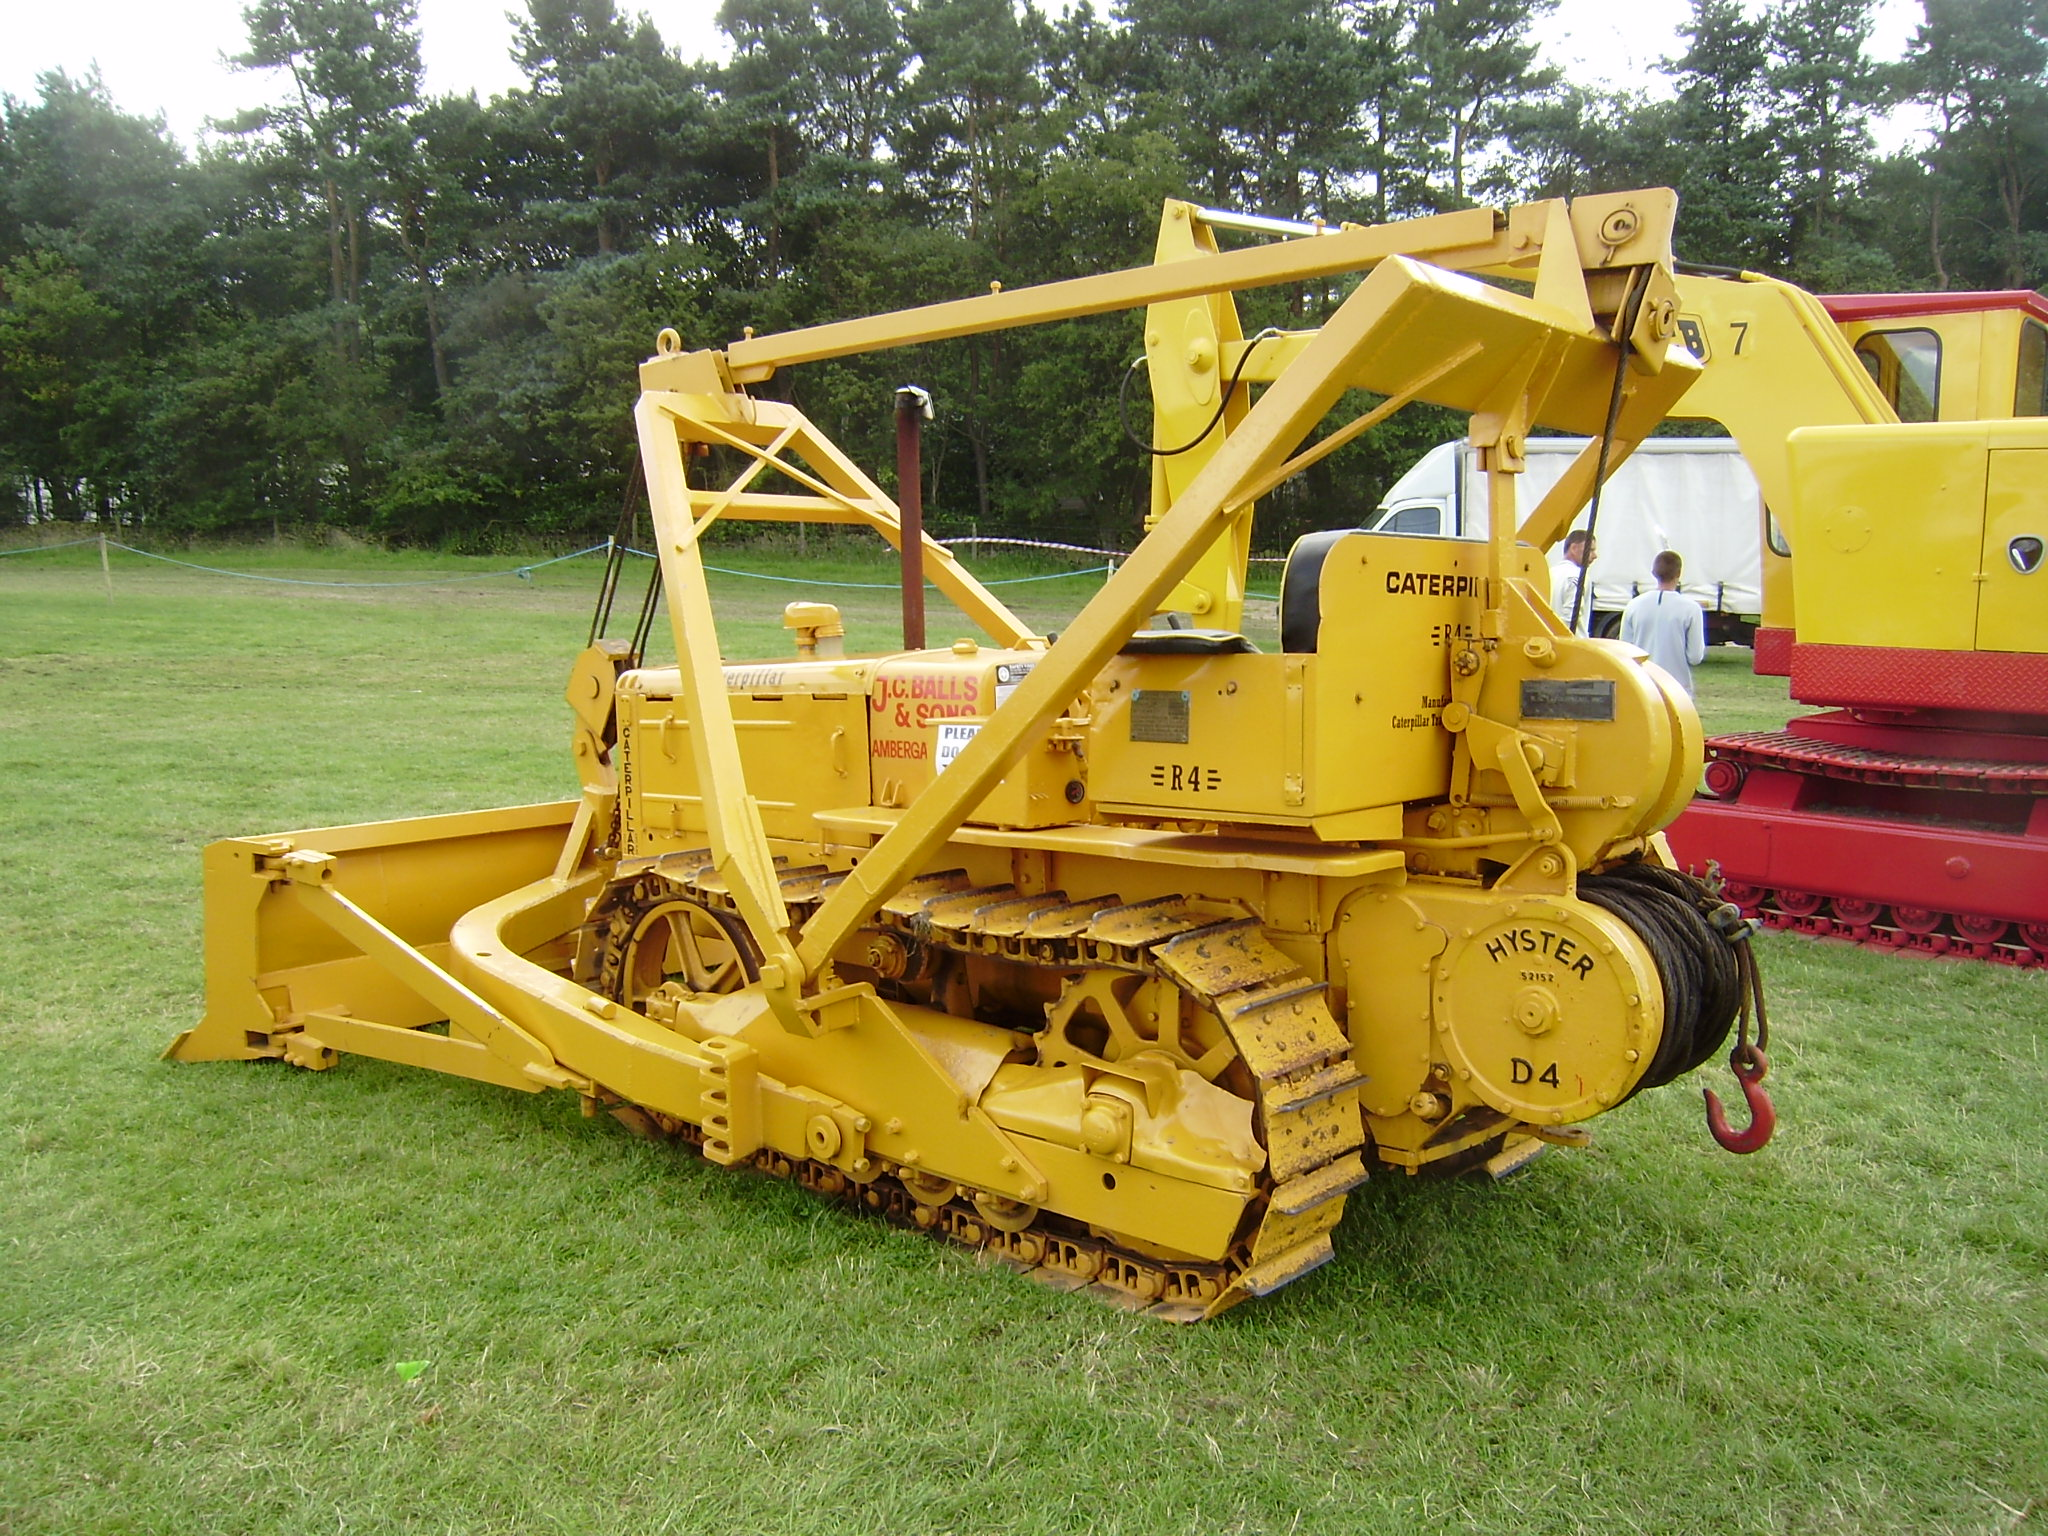 Caterpillar d3 photo - 2